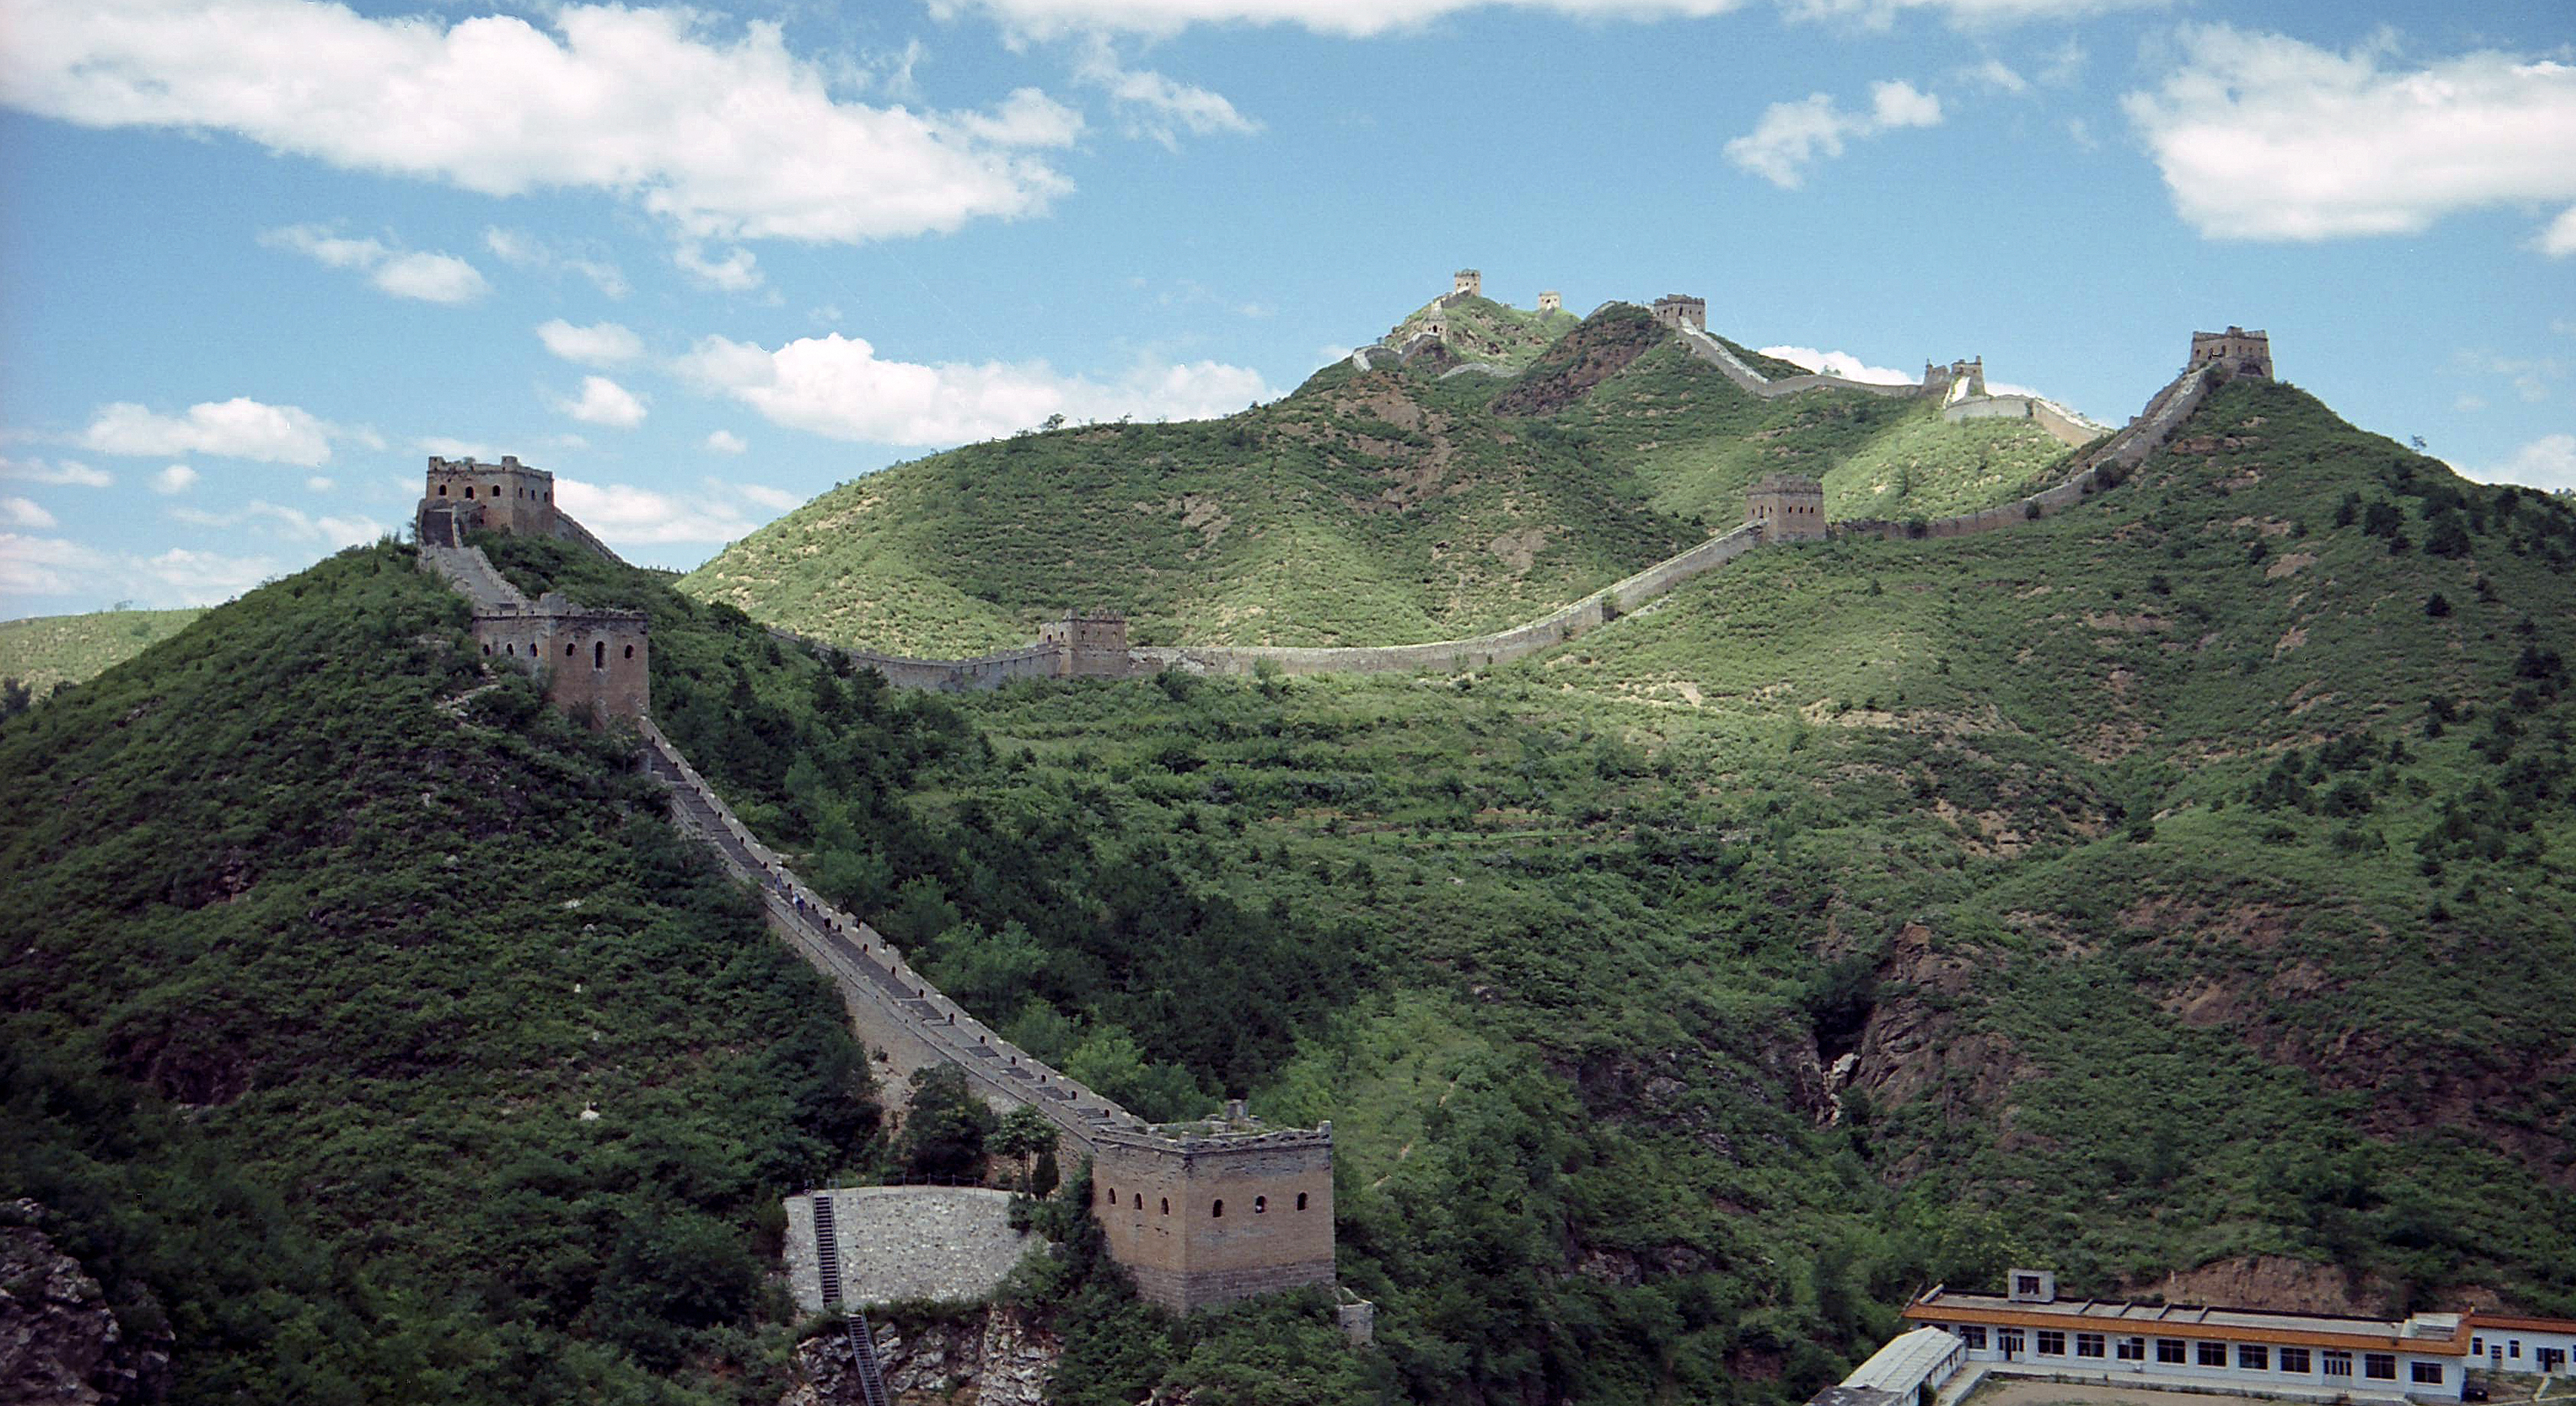 Great Wall of China, Beijing China 9.jpg - Great Wall of China